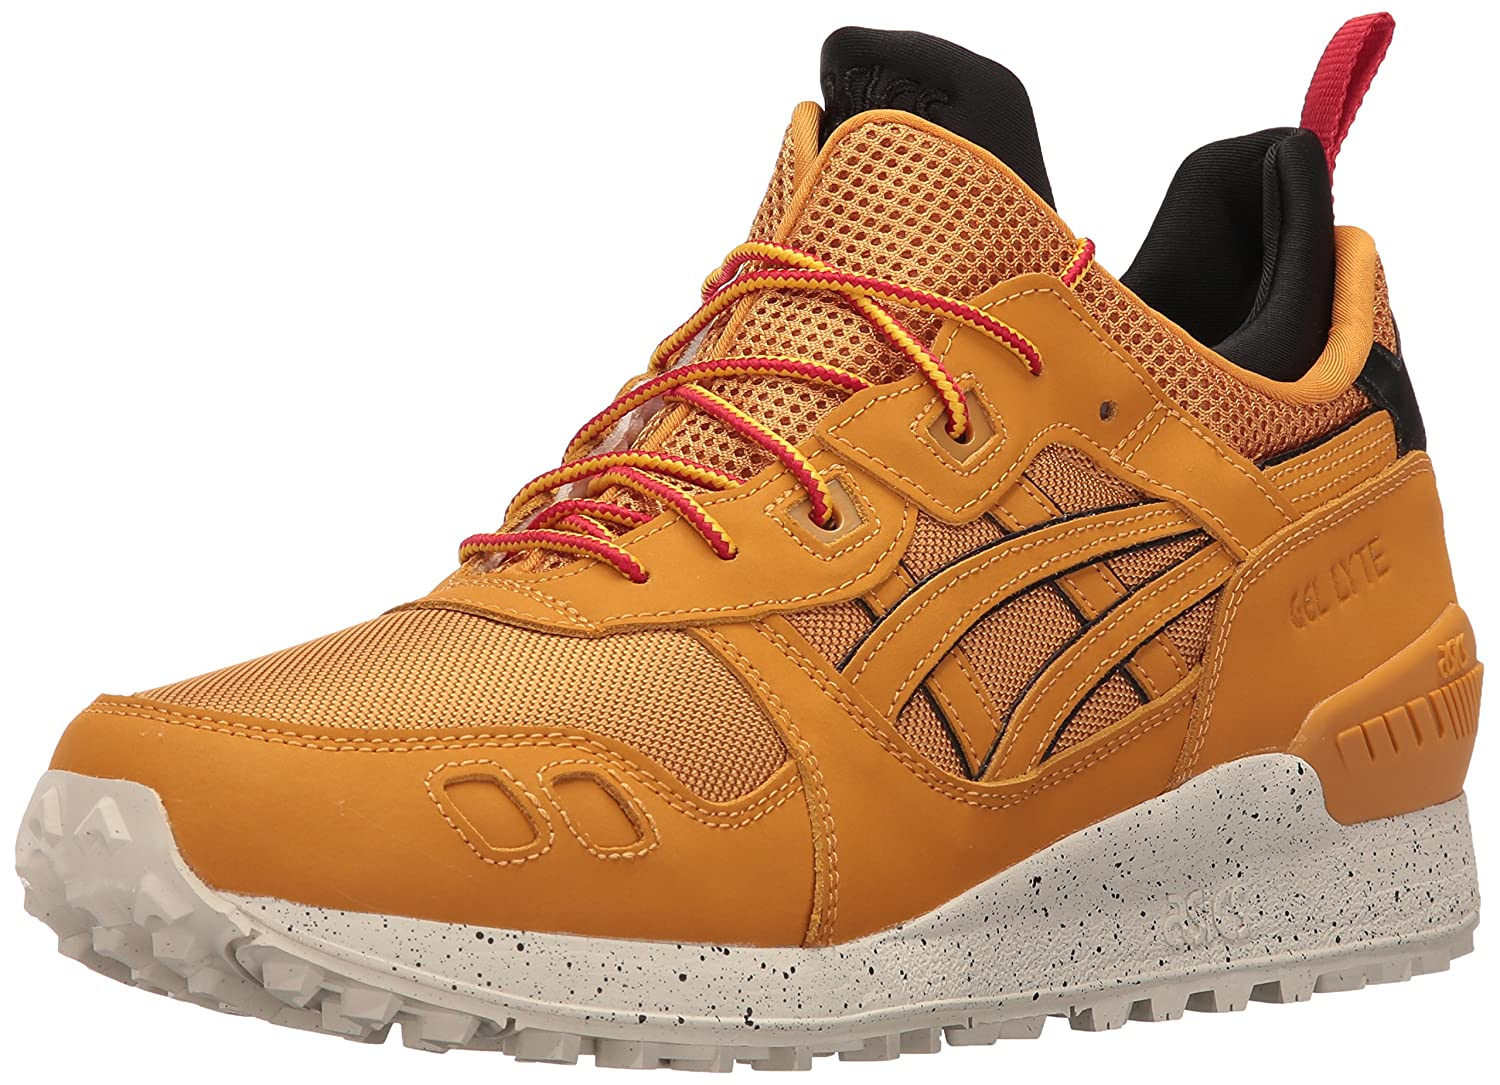 ASICS Men's Gel-Lyte MT Fashion Sneaker B01ETZS8C8 9.5 D(M) US|Tan/Tan